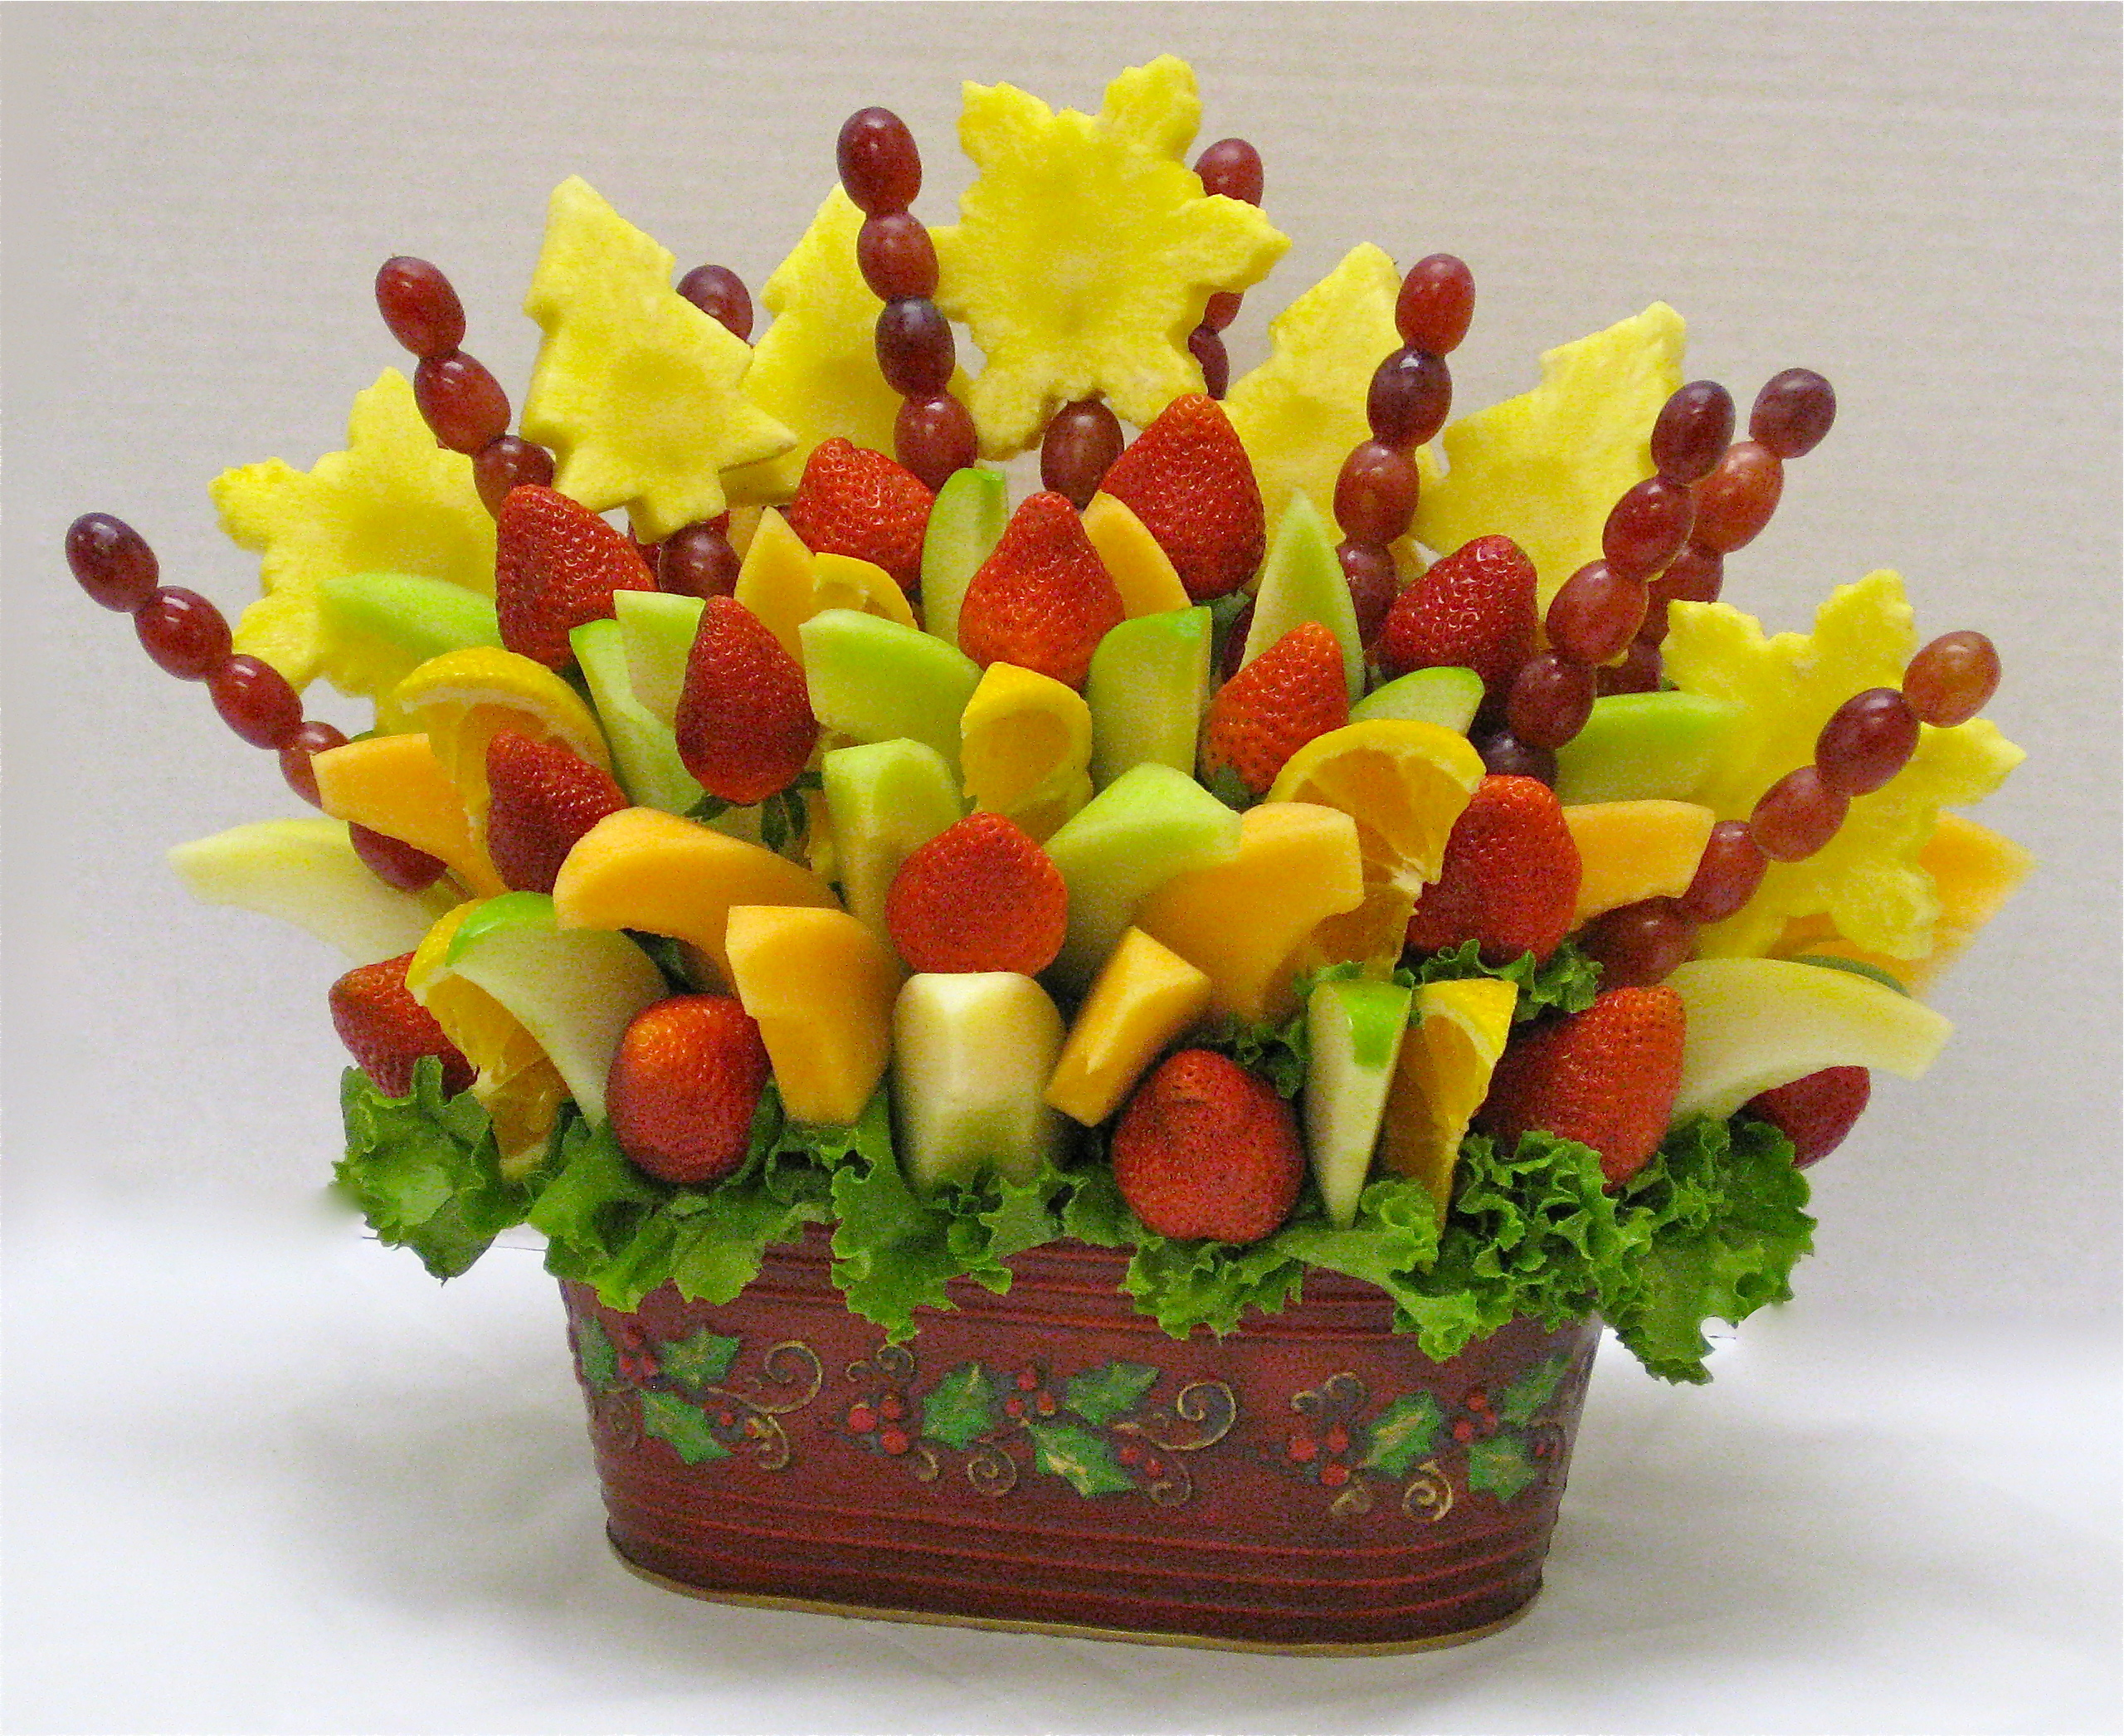 edible arrangements on pinterest fruit arrangements. Black Bedroom Furniture Sets. Home Design Ideas